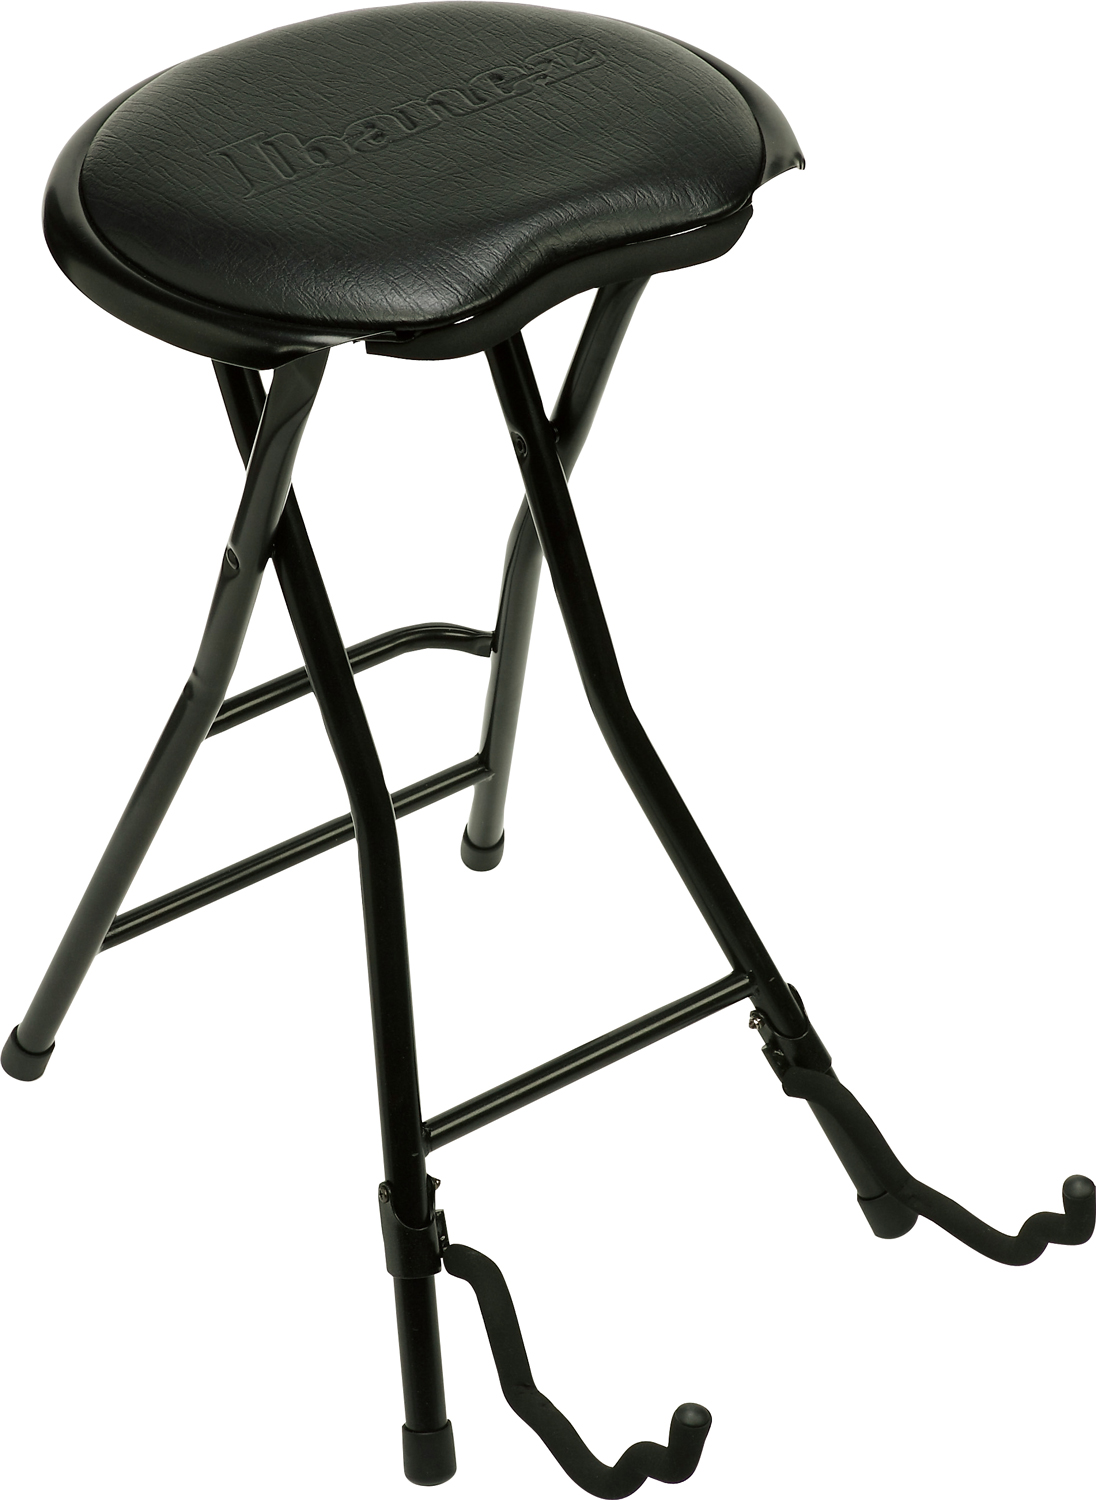 musicworks guitar accessories guitar stands guitar stands ibanez chair guitar stand. Black Bedroom Furniture Sets. Home Design Ideas